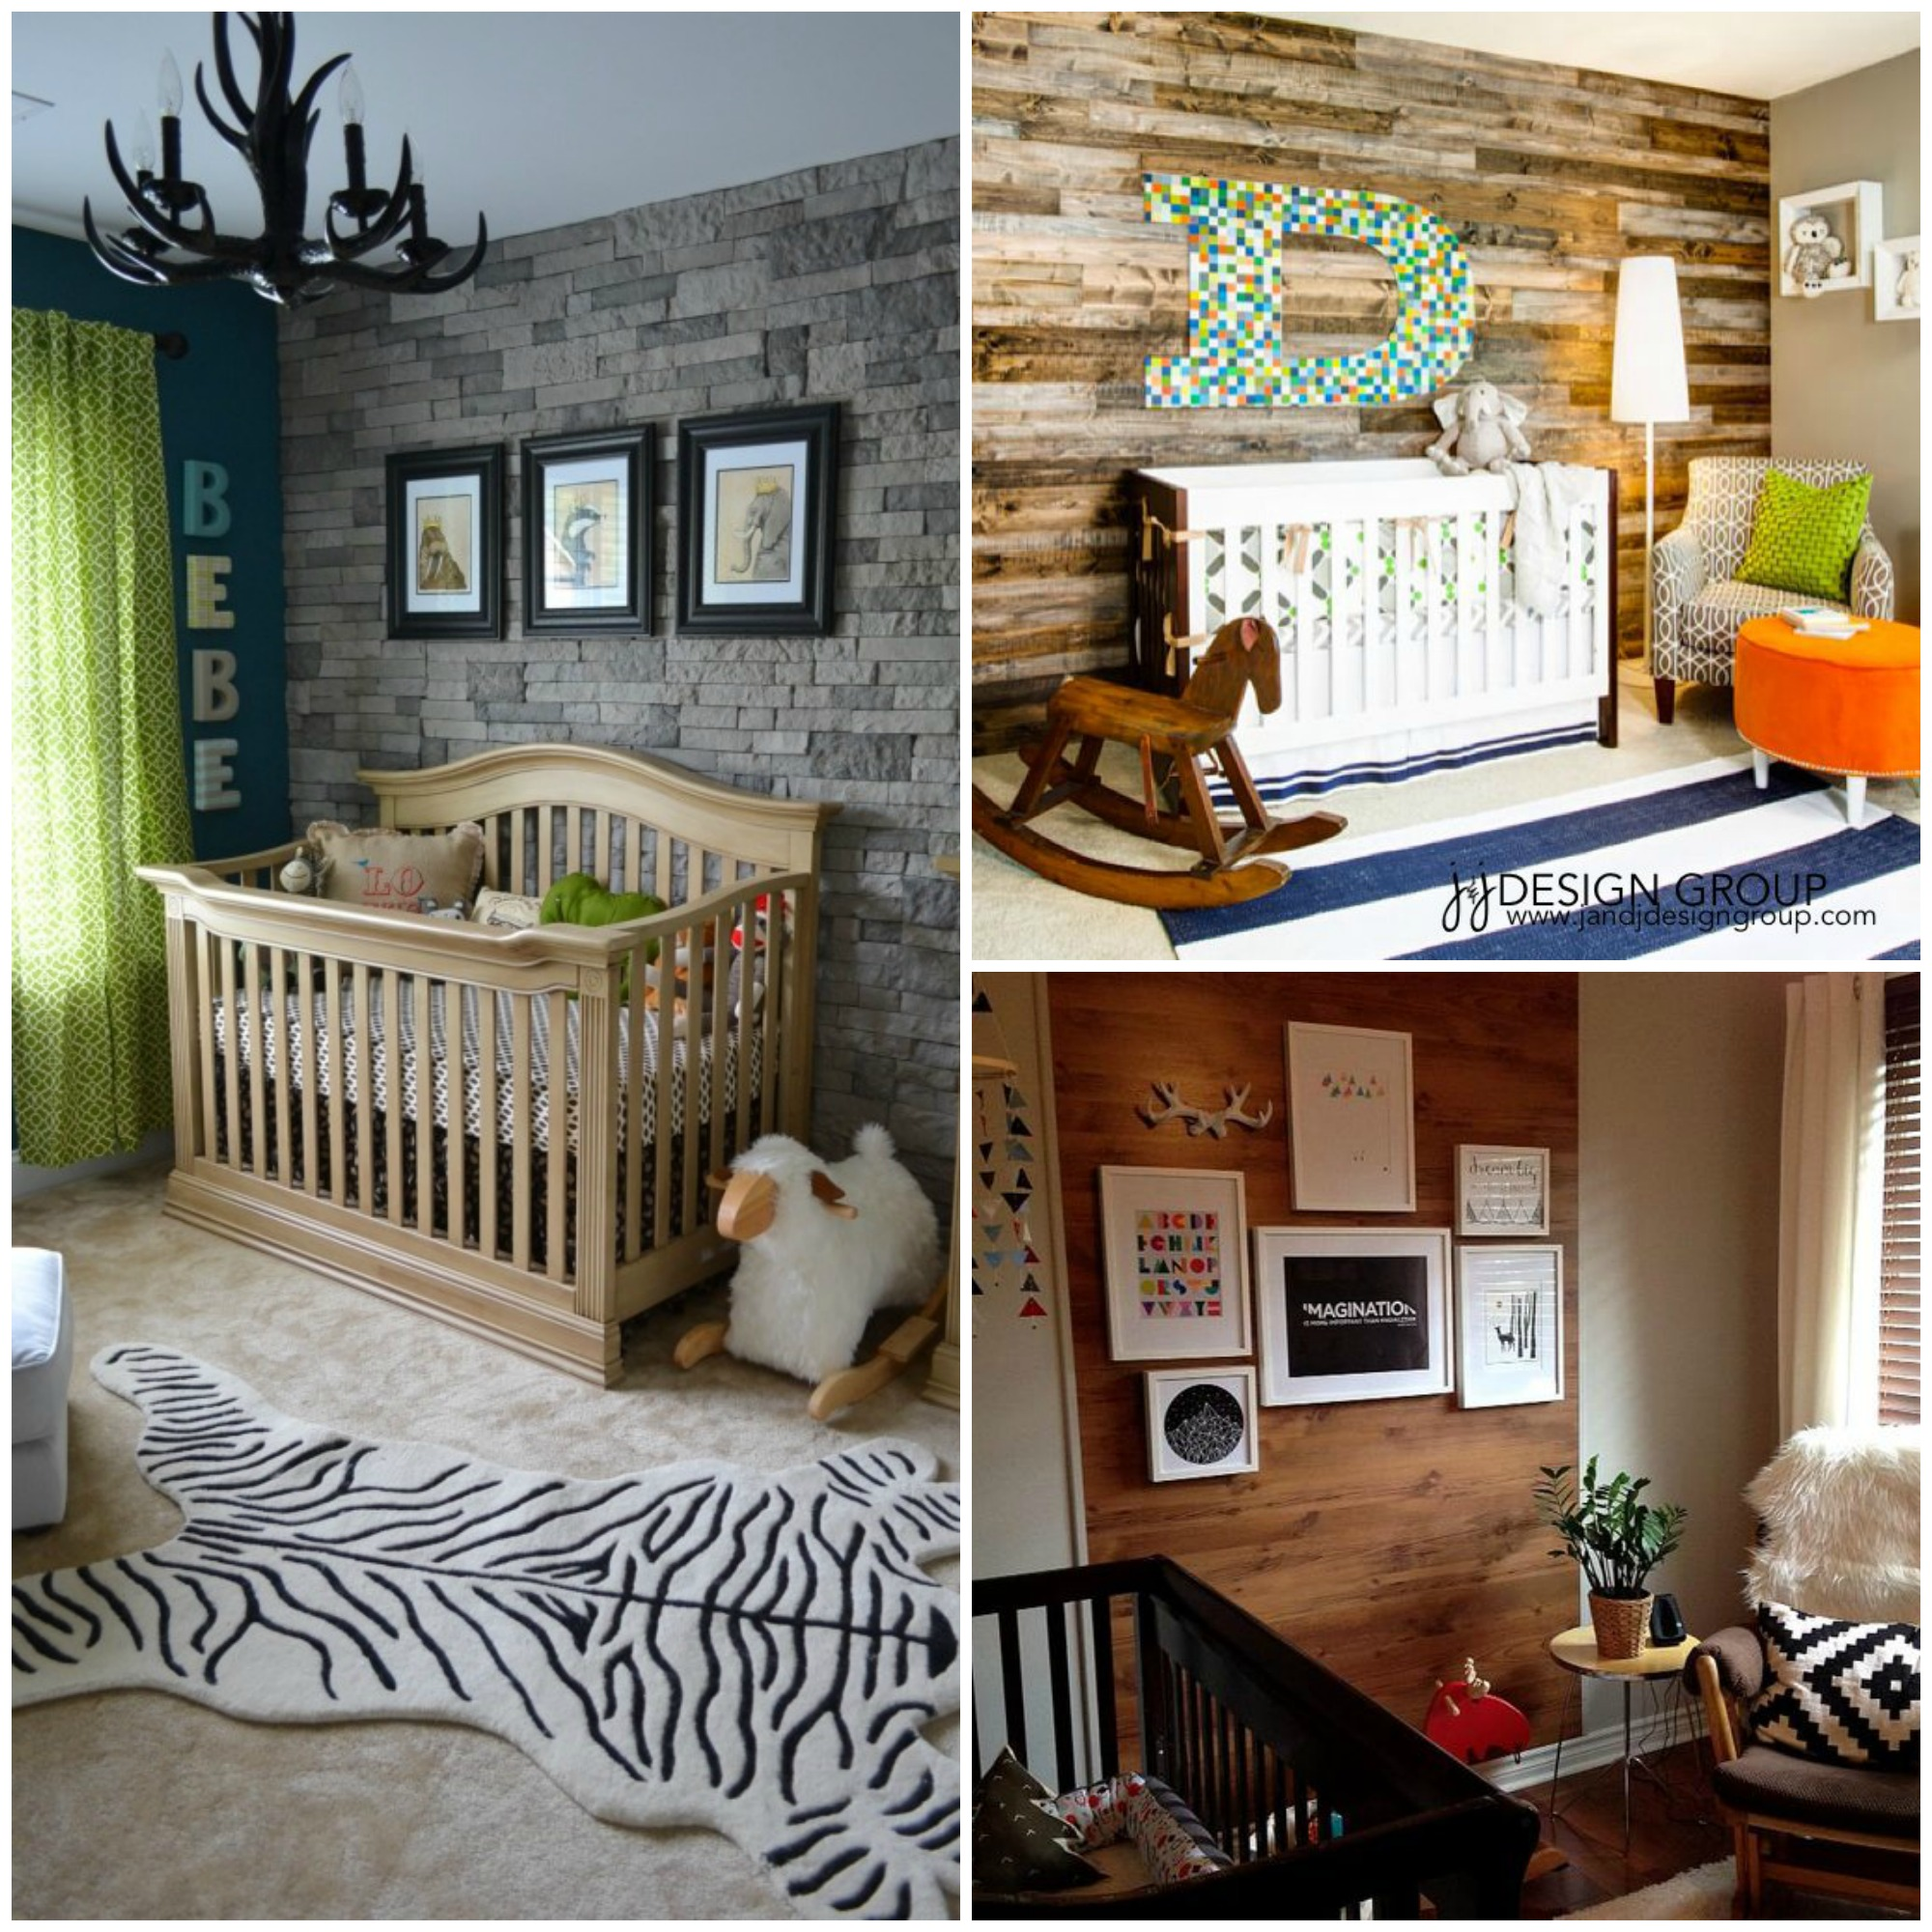 Install Shiplap Wall Rustic Home Office Makeover besides Plants Flowers furthermore San Francisco Bay Area Artist Studio Eclectic Living Room San Francisco likewise American Style Living Room Tv Backdrop Decoration likewise Woodland Nursery The Plan. on rustic themed living room